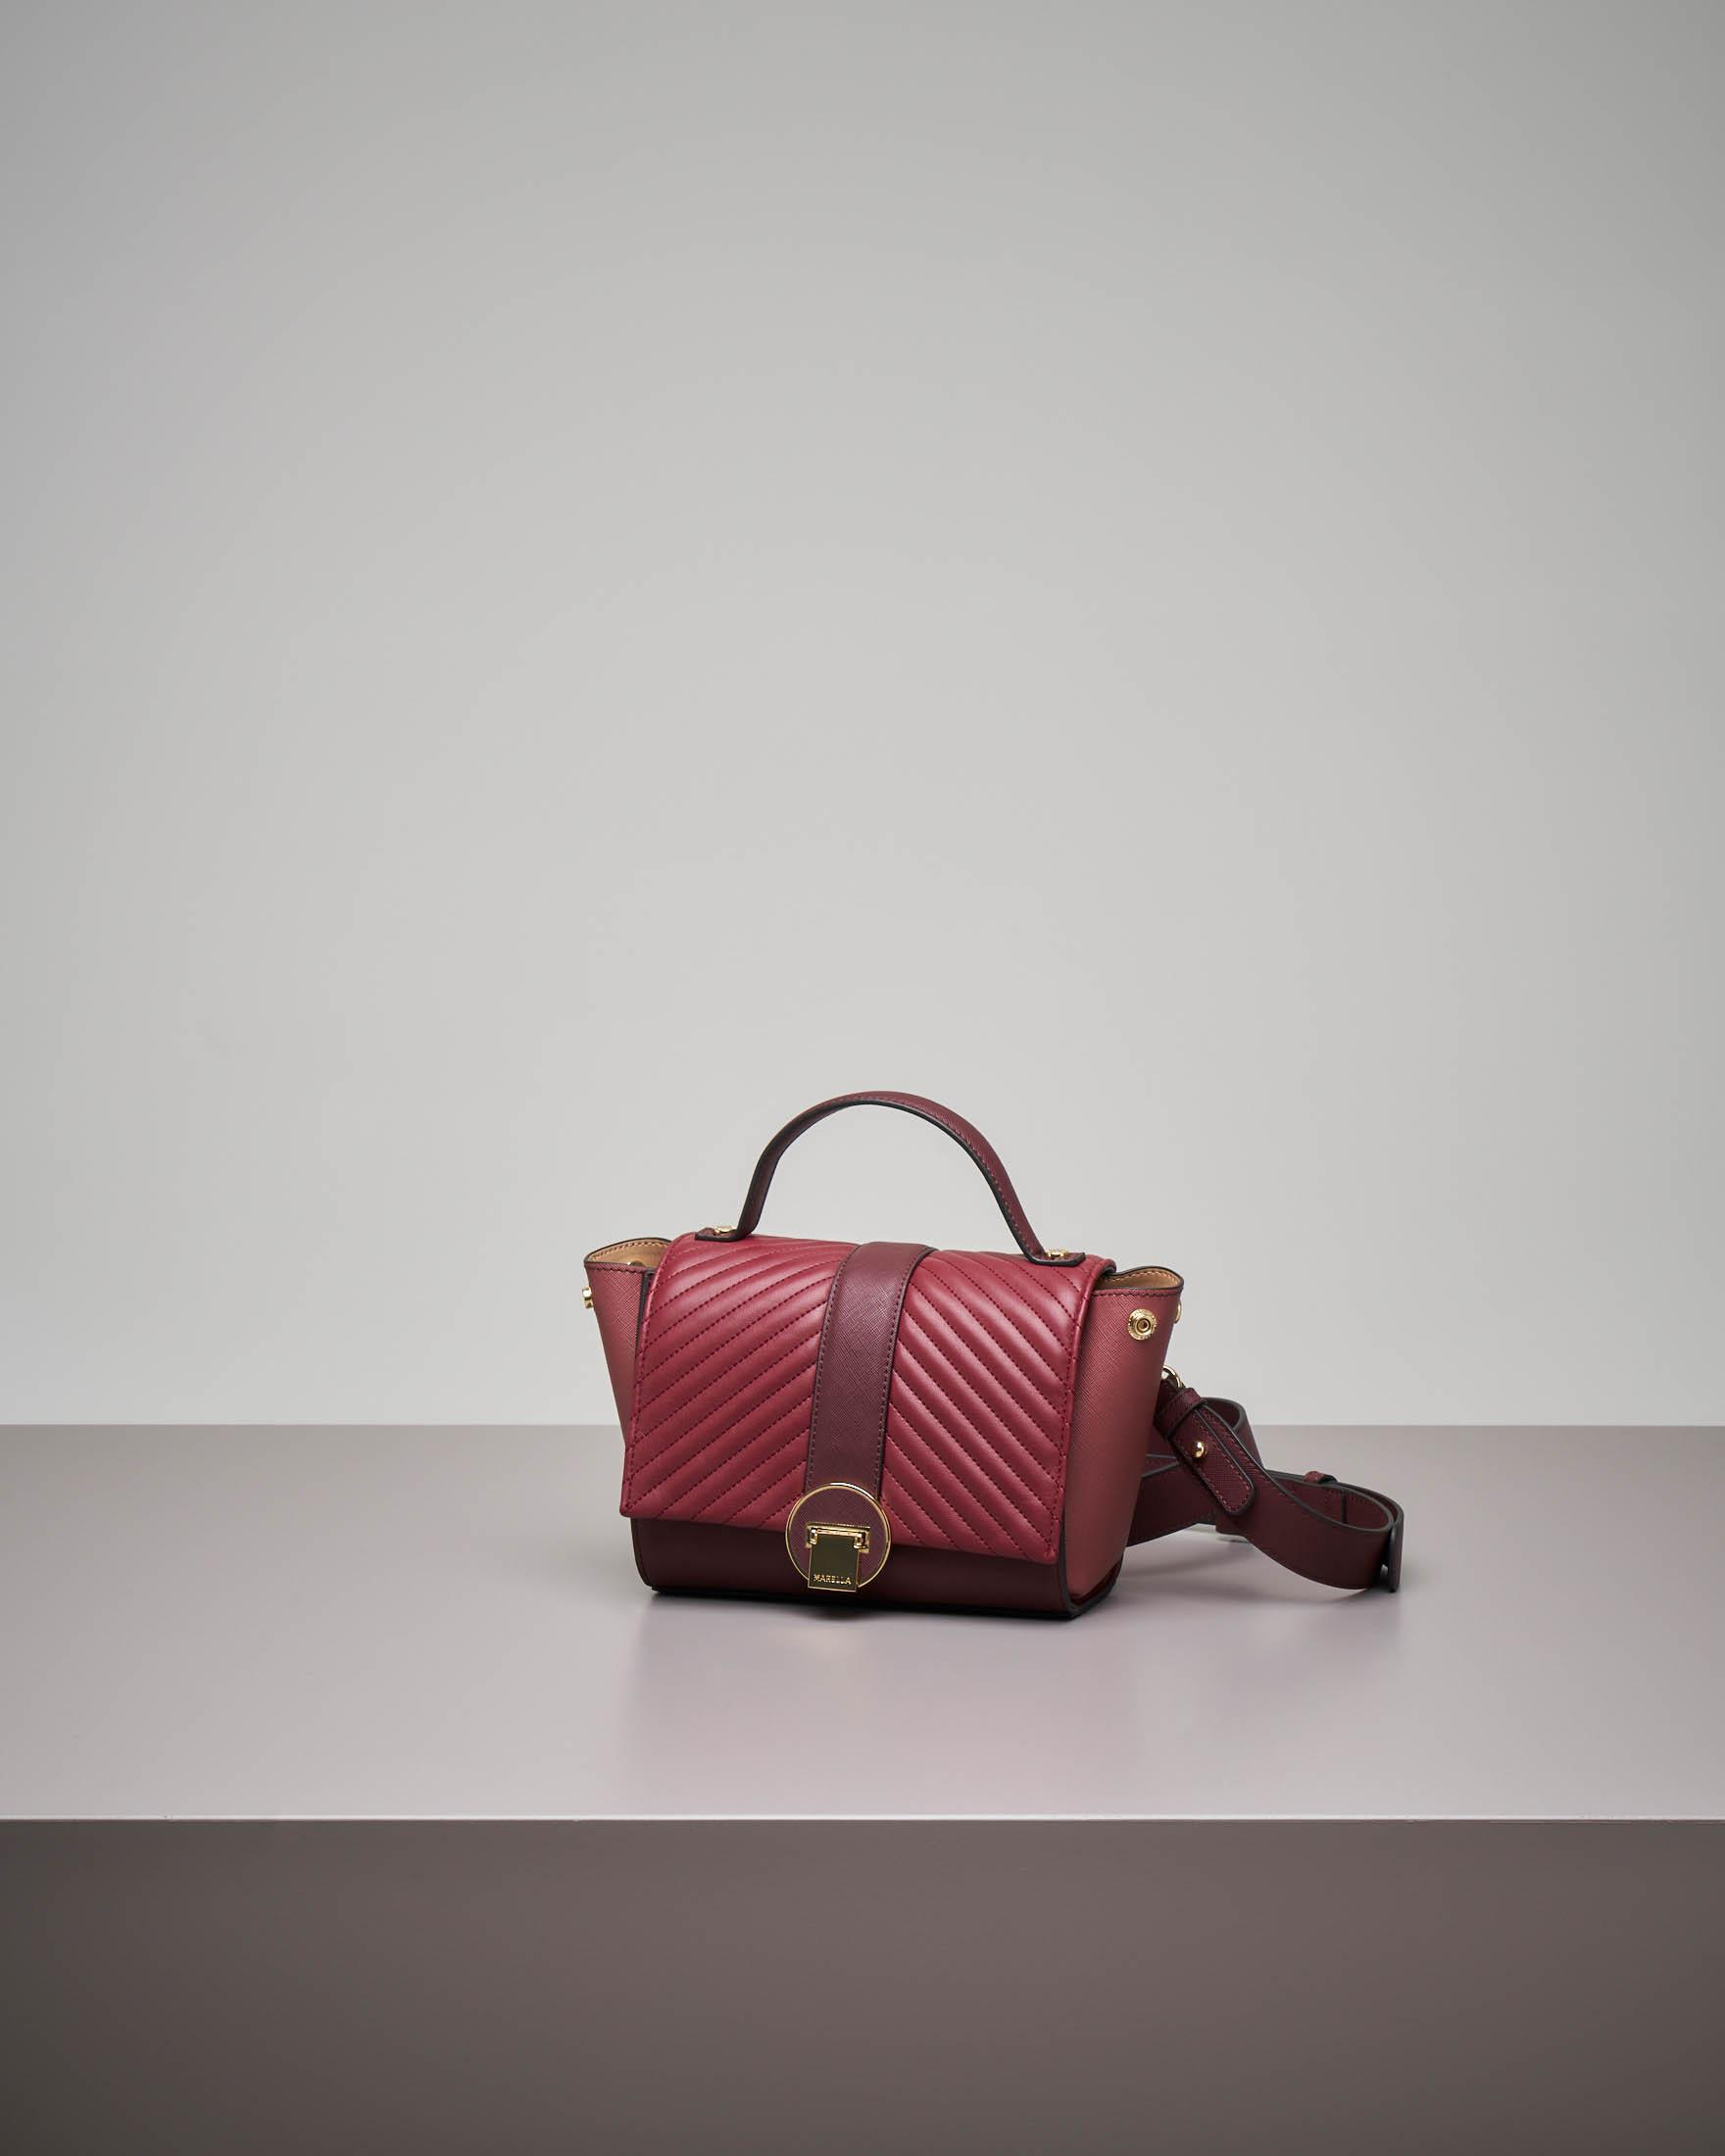 Mini bag bordeaux con patta intercambiabile beige e bordeaux